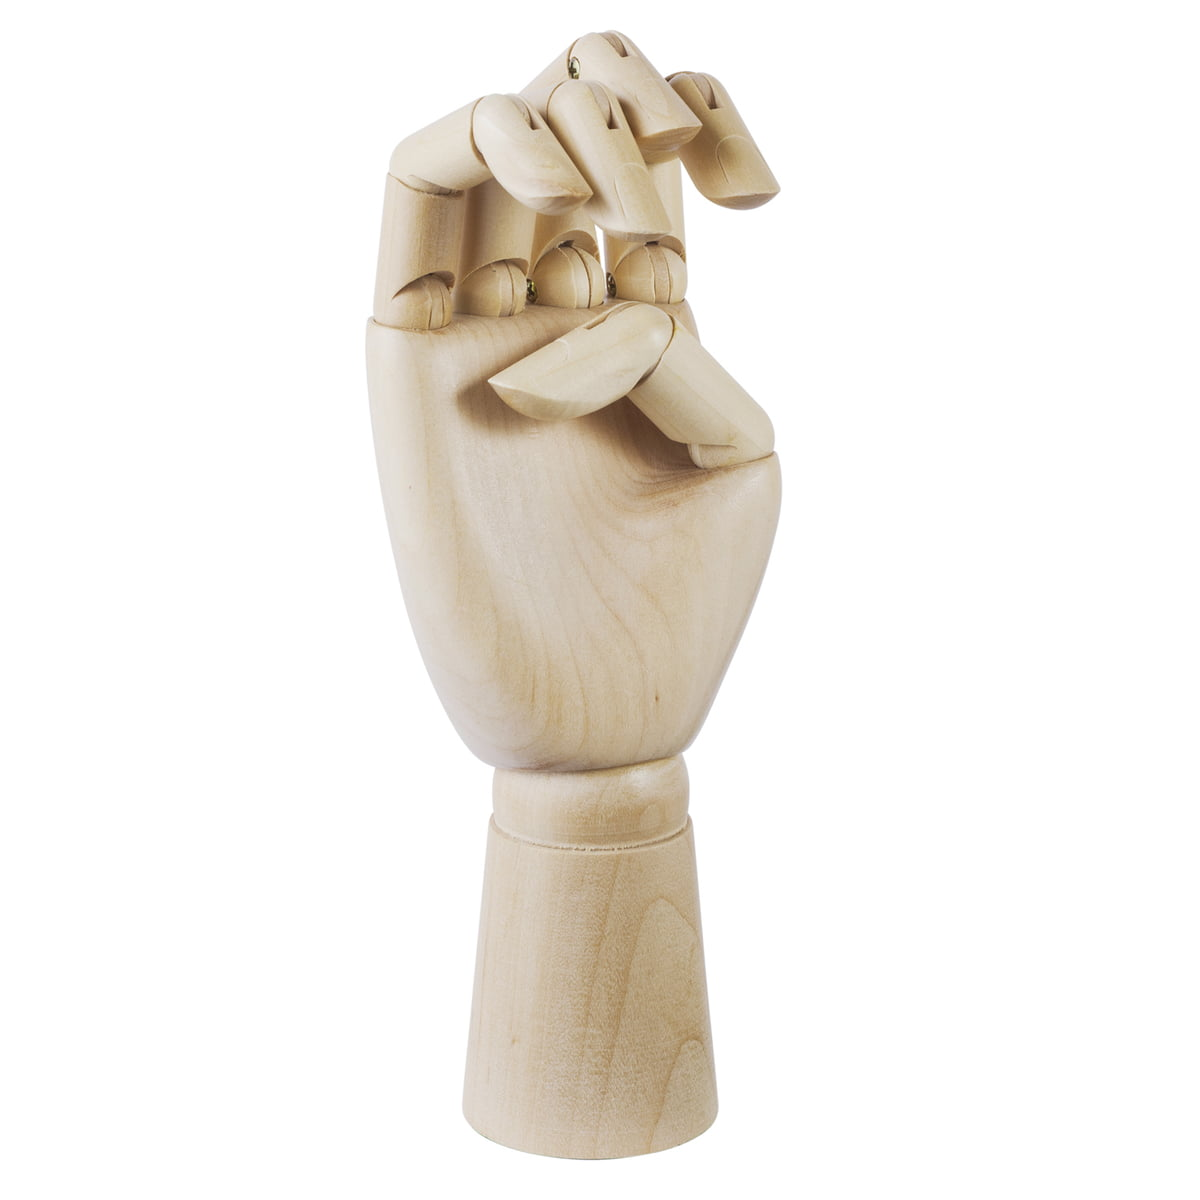 Hay Wooden Hand Small